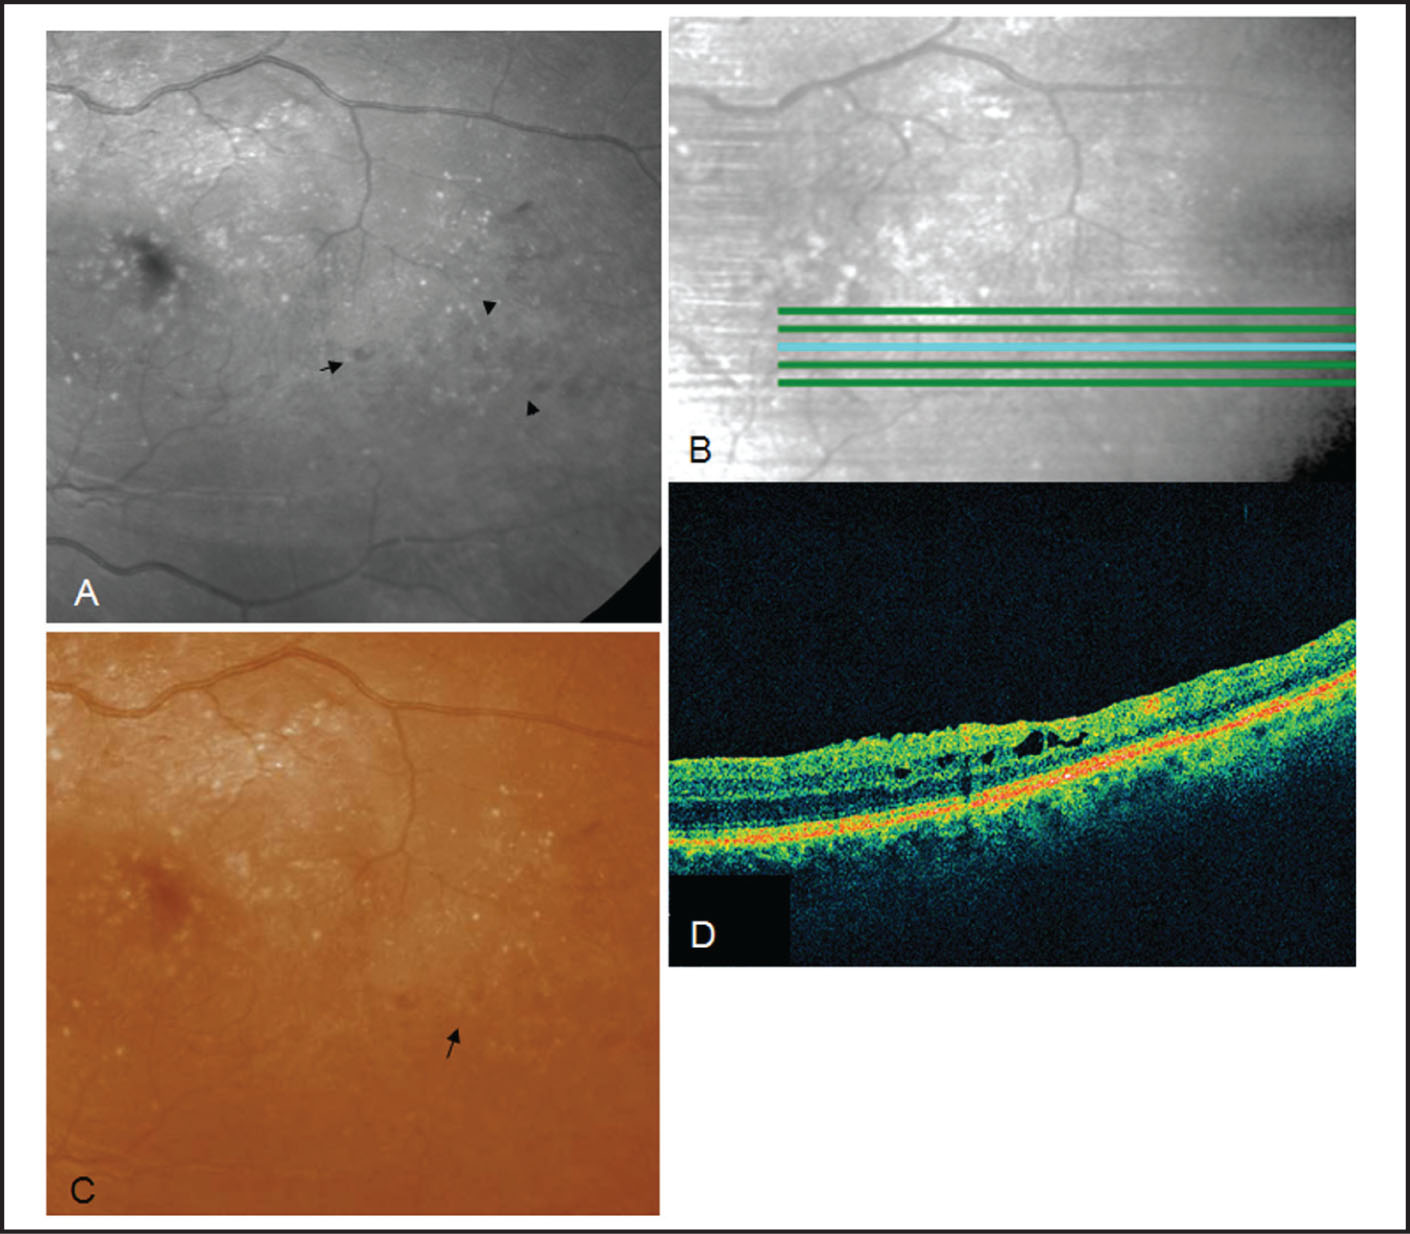 Postoperative Findings in Case 1. (A) Blue Reflectance Fundus Photograph Showing the Location of Alveolar Imprints Coincides Exactly with the Area of Alveolar Retinal Microholes (black Arrows). (B) The Corresponding Virtual Optical Coherence Tomography (OCT) Fundus Photograph Acquired with Spectral Domain OCT and Correlated with Blue Reflectance Fundus Photograph. (C) Color Fundus Photograph Showing Tiny Alveolar Imprints Have Replaced the Lamellar Holes. (D) Scan Images with Spectral Domain OCT Showing Hyporeflective Cystic Spaces.